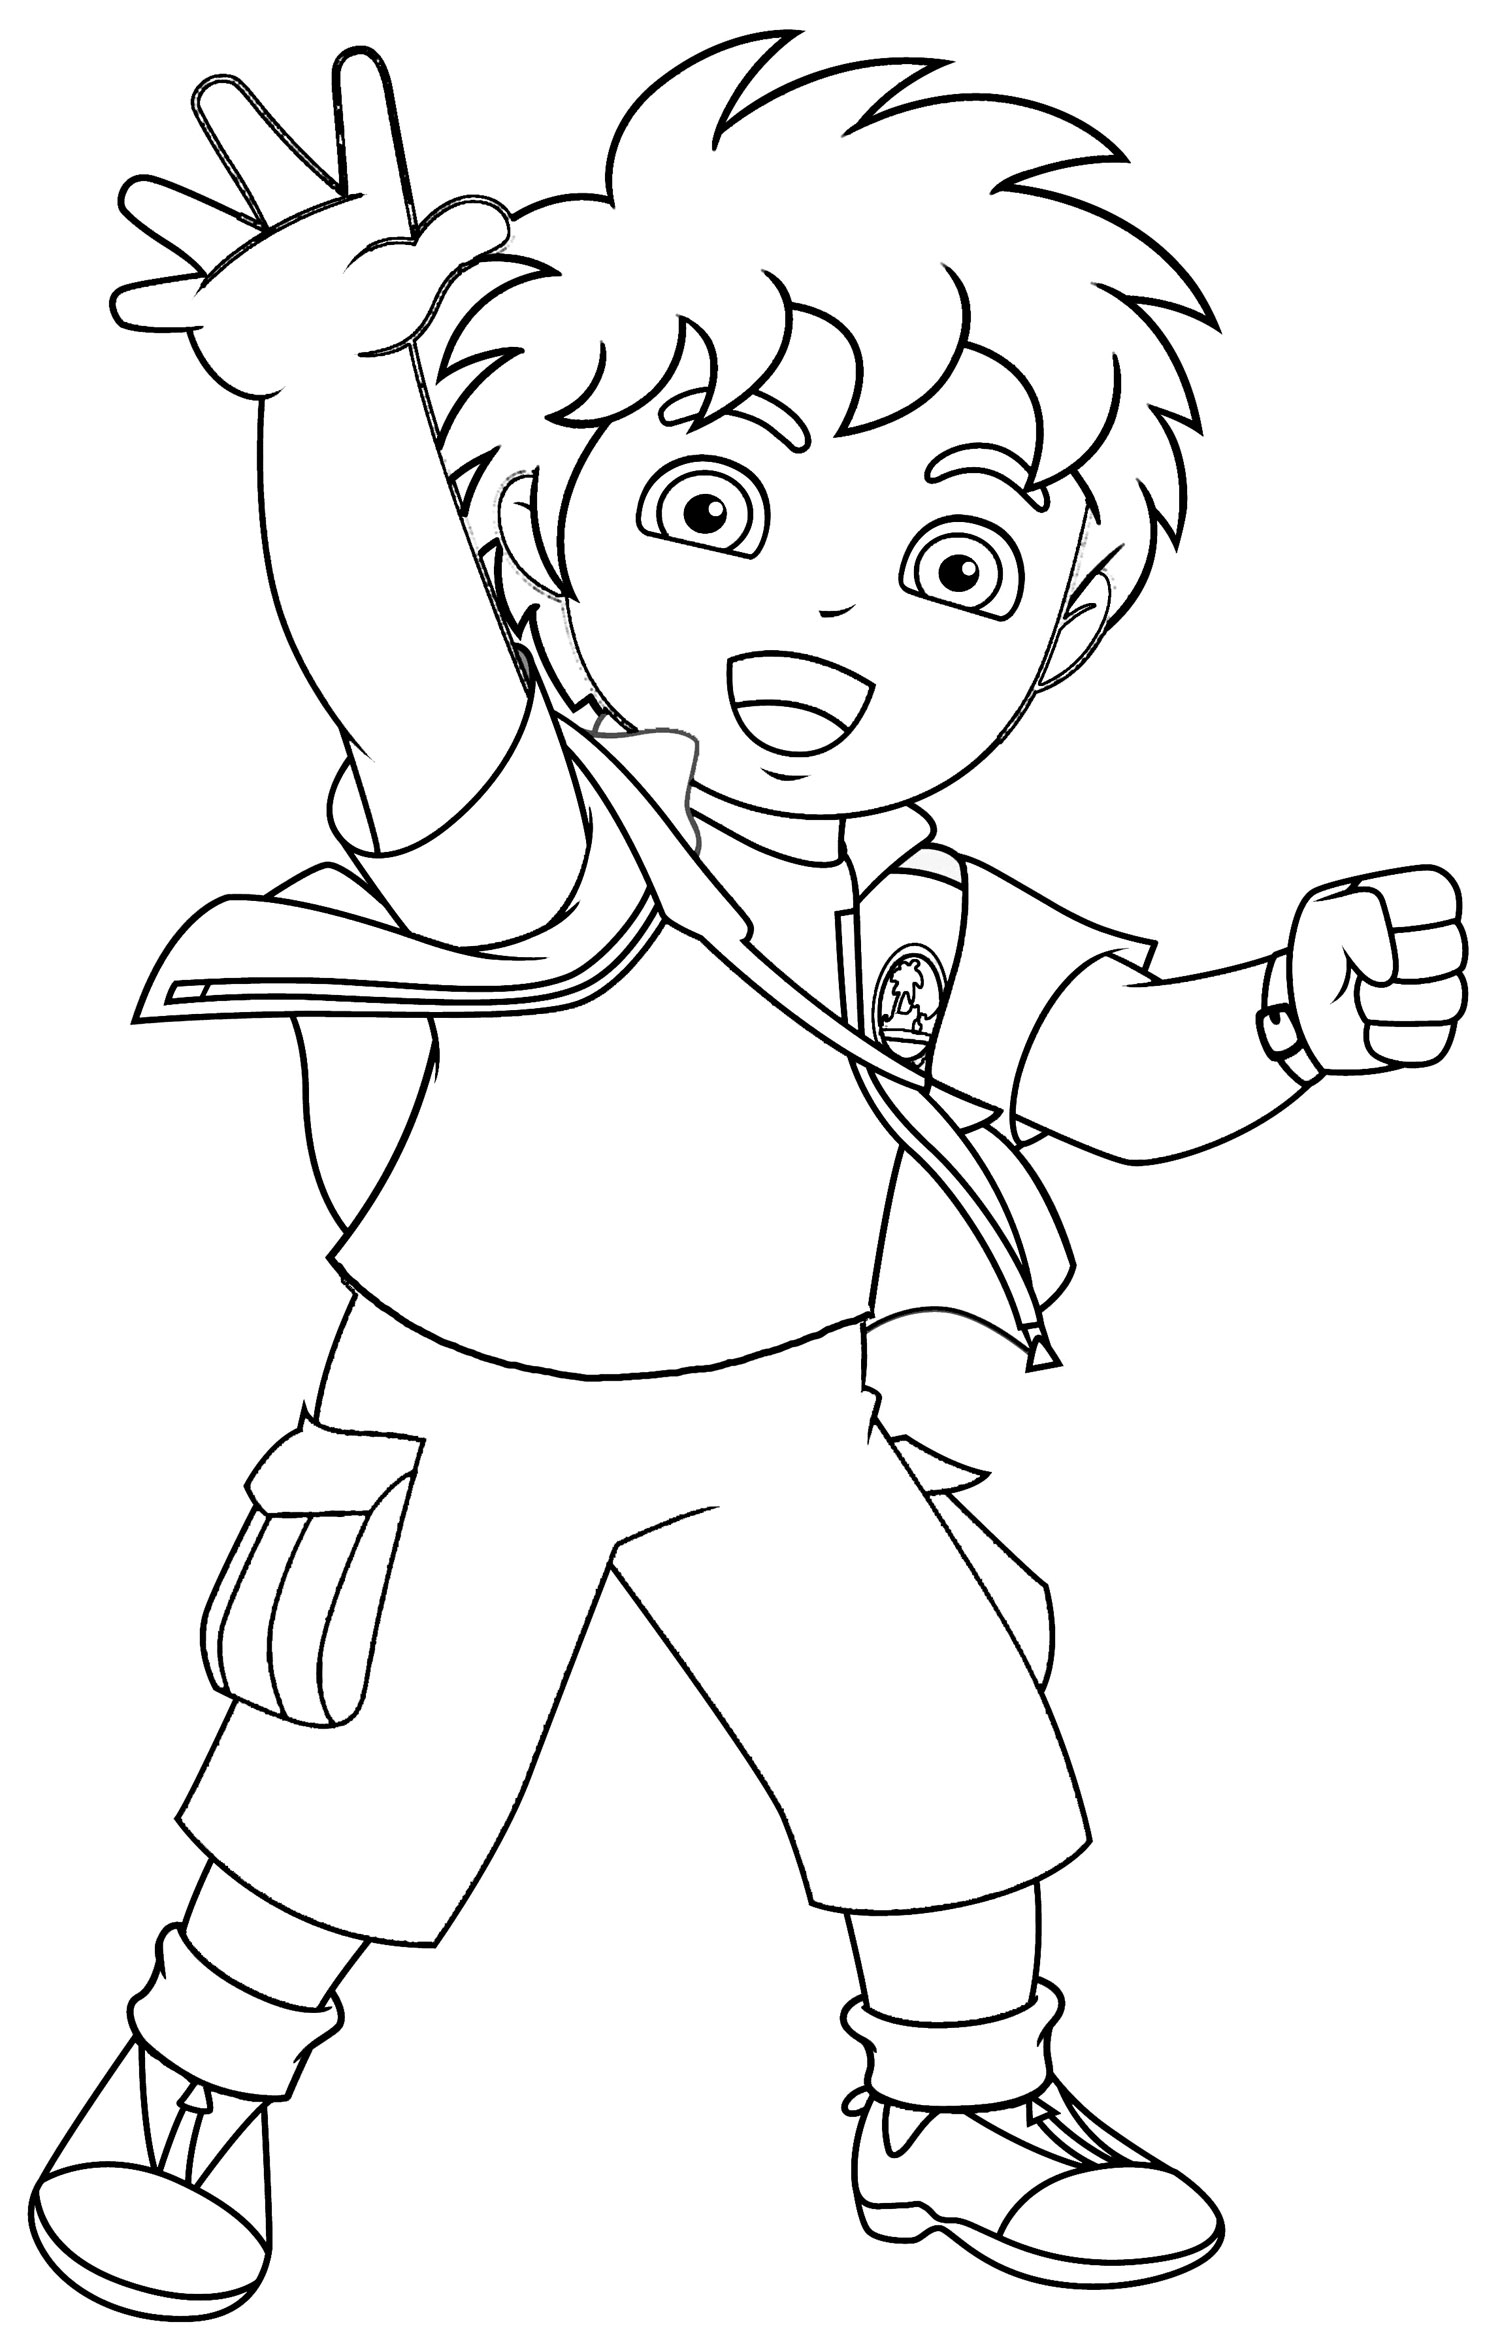 Coloring Pages For Kids Printable : Free printable diego coloring pages for kids